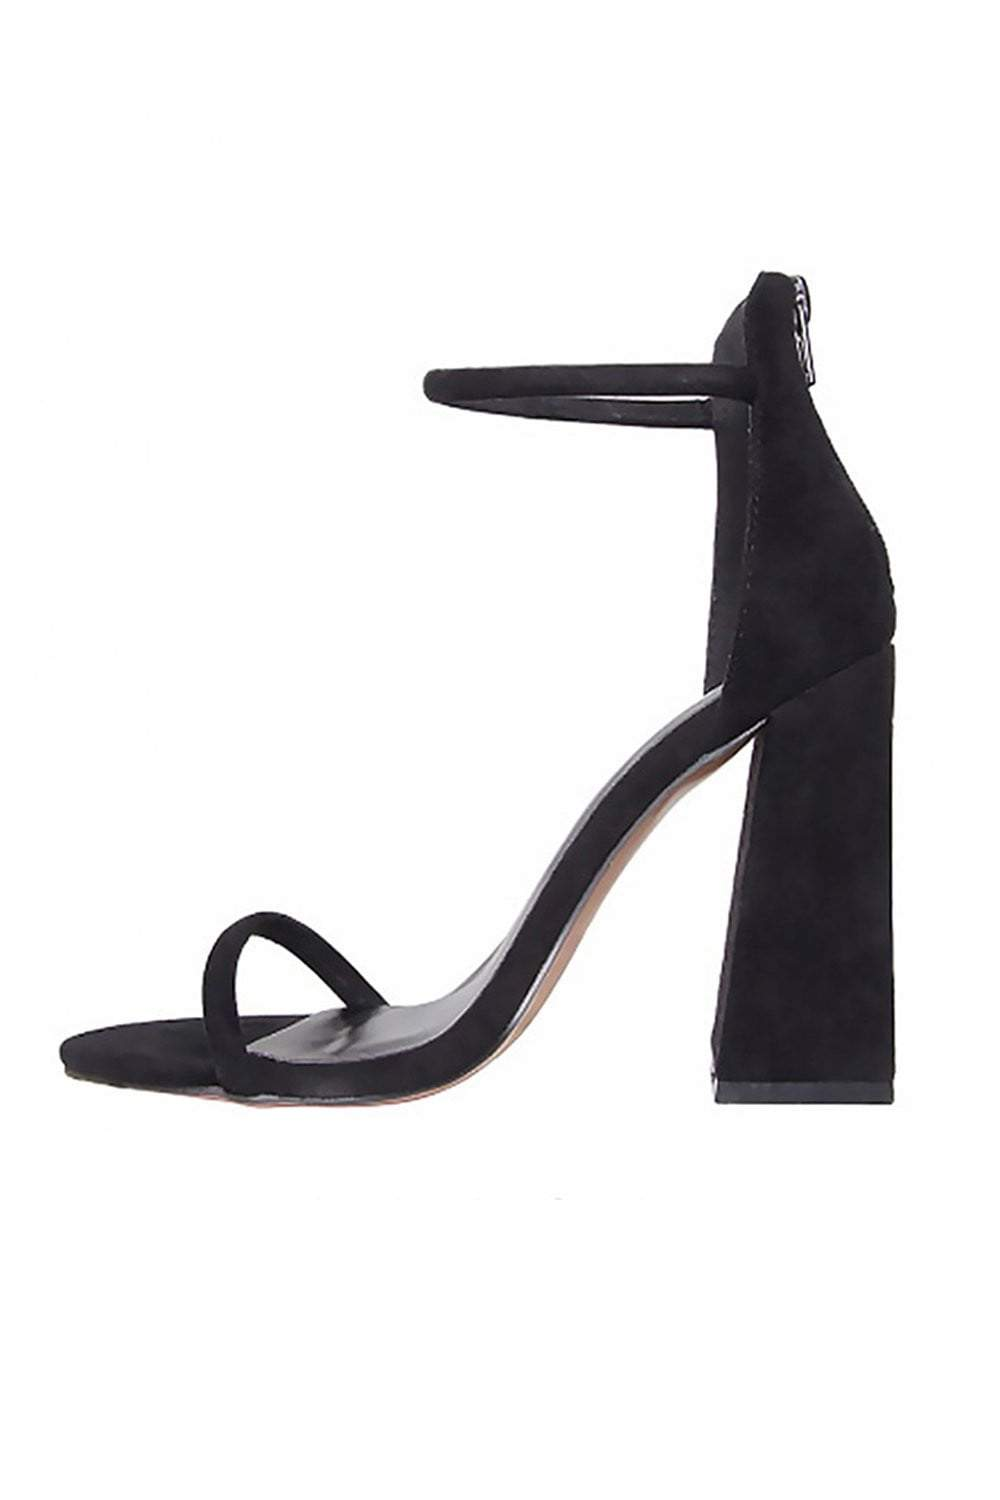 Black Barely There Block Heeled Sandals (2335396528187)